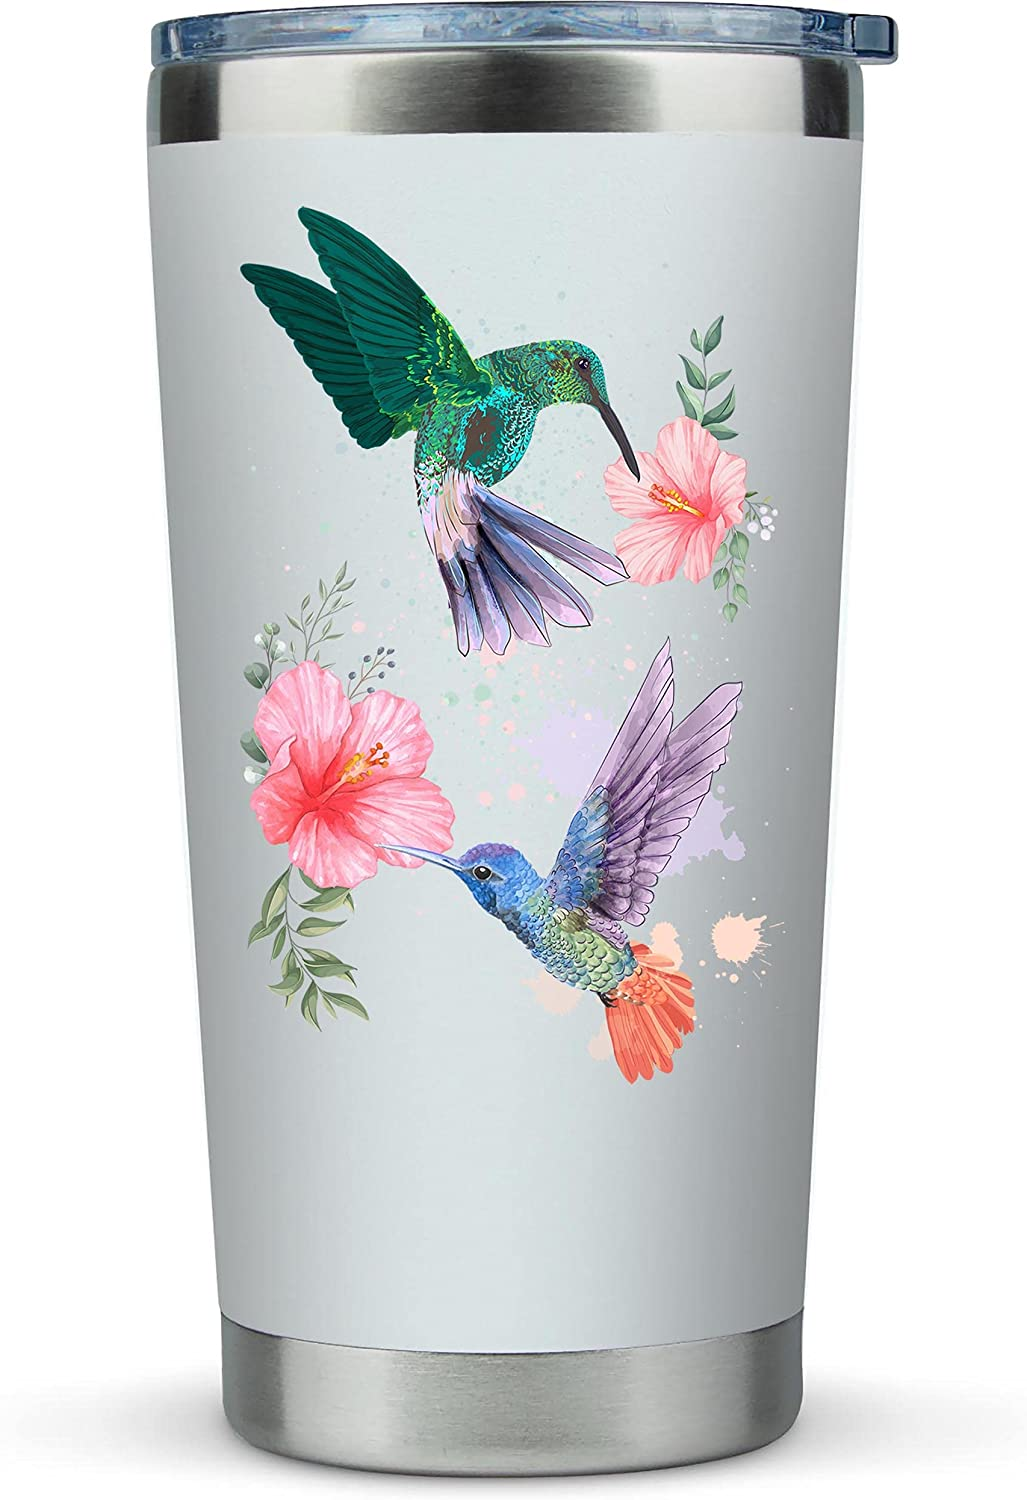 Hummingbird Gifts for Women - Large 20oz Tumbler Mug for Coffee or Any Drink - Cute Gift Idea for Bird Lovers